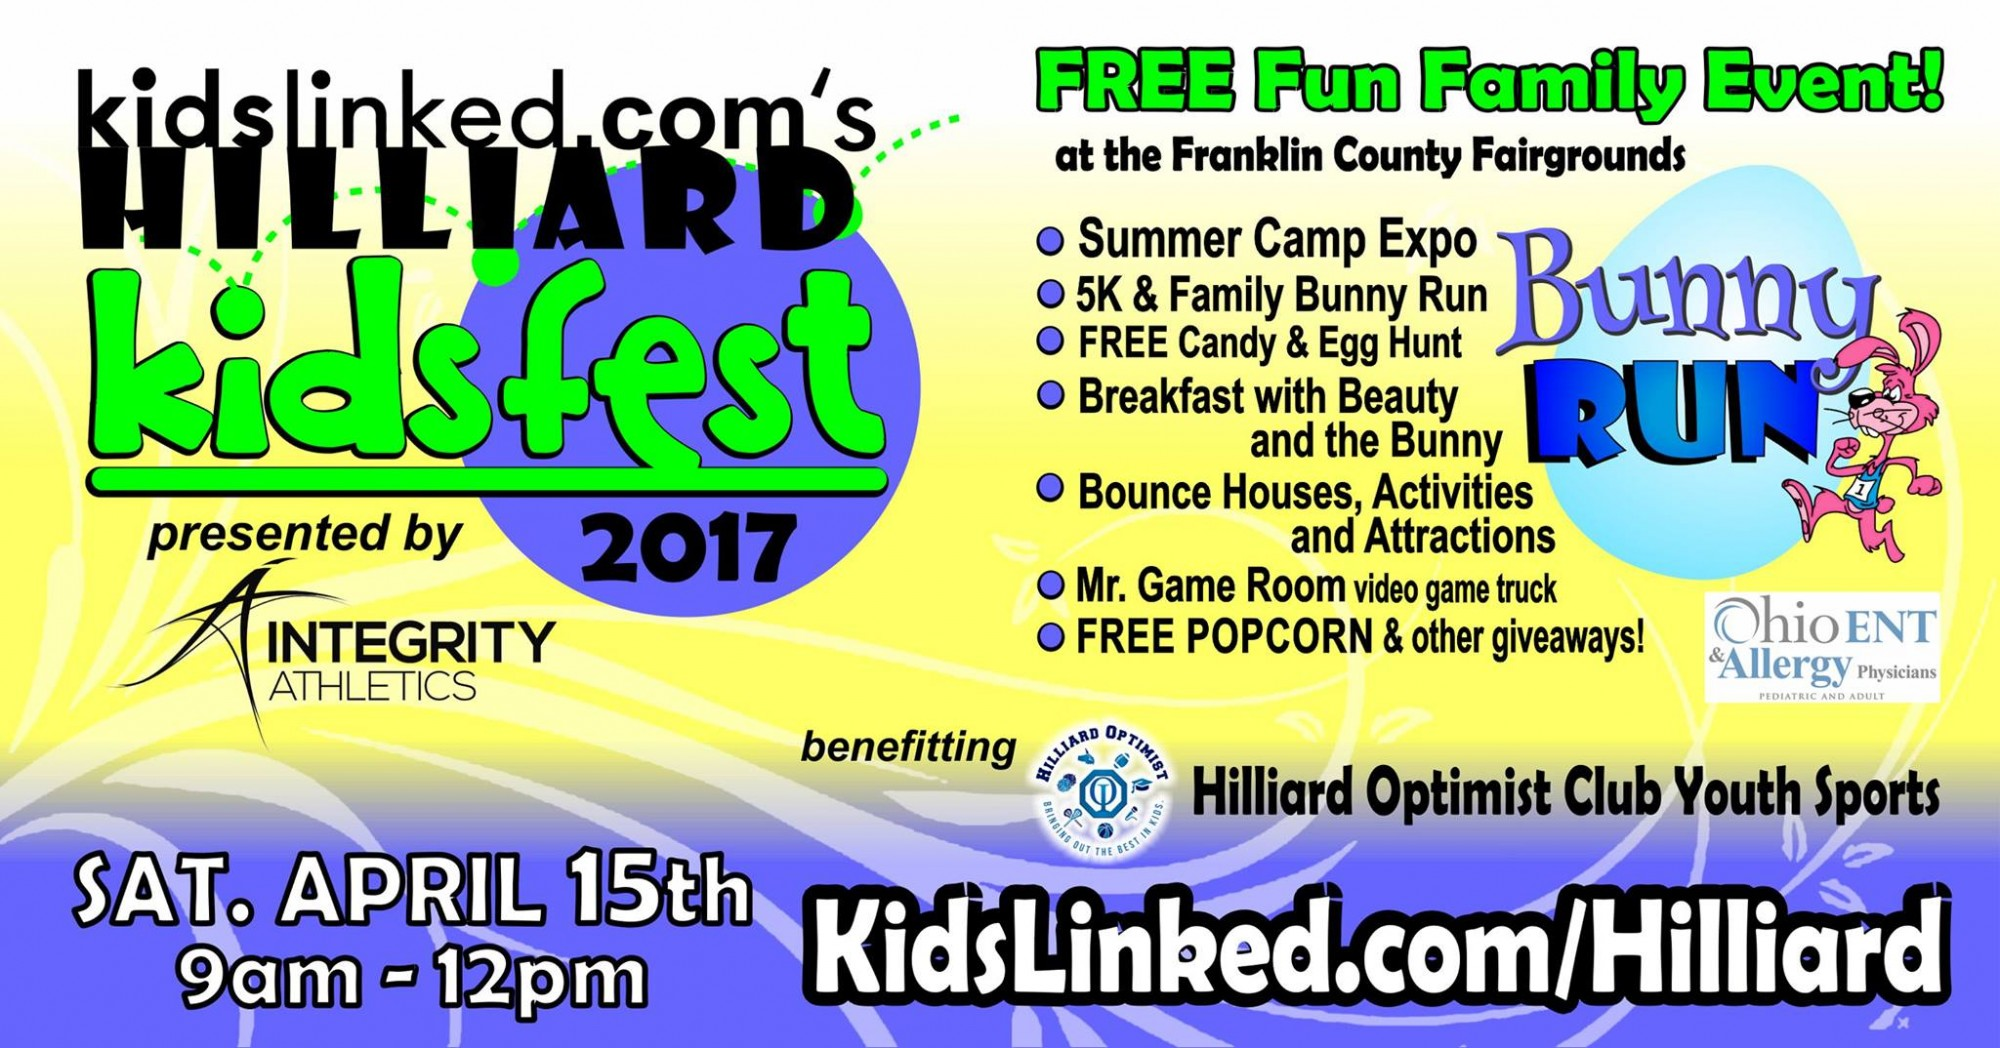 Meet us at the Hilliard Kids Fest